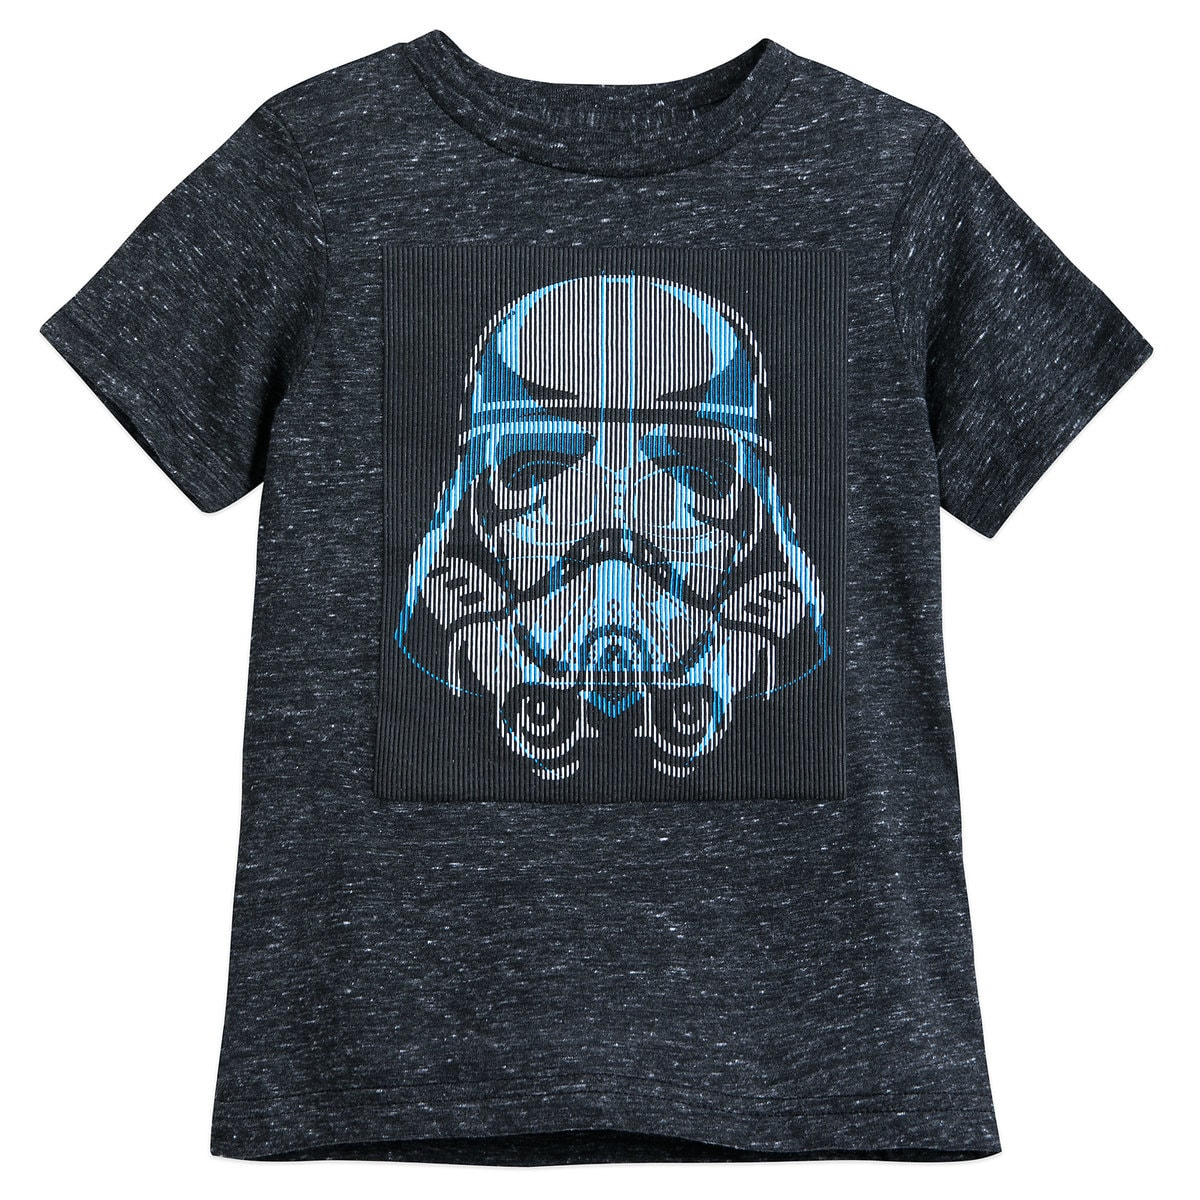 c6f3218c2 Product Image of Star Wars Lenticular T-Shirt for Boys # 1